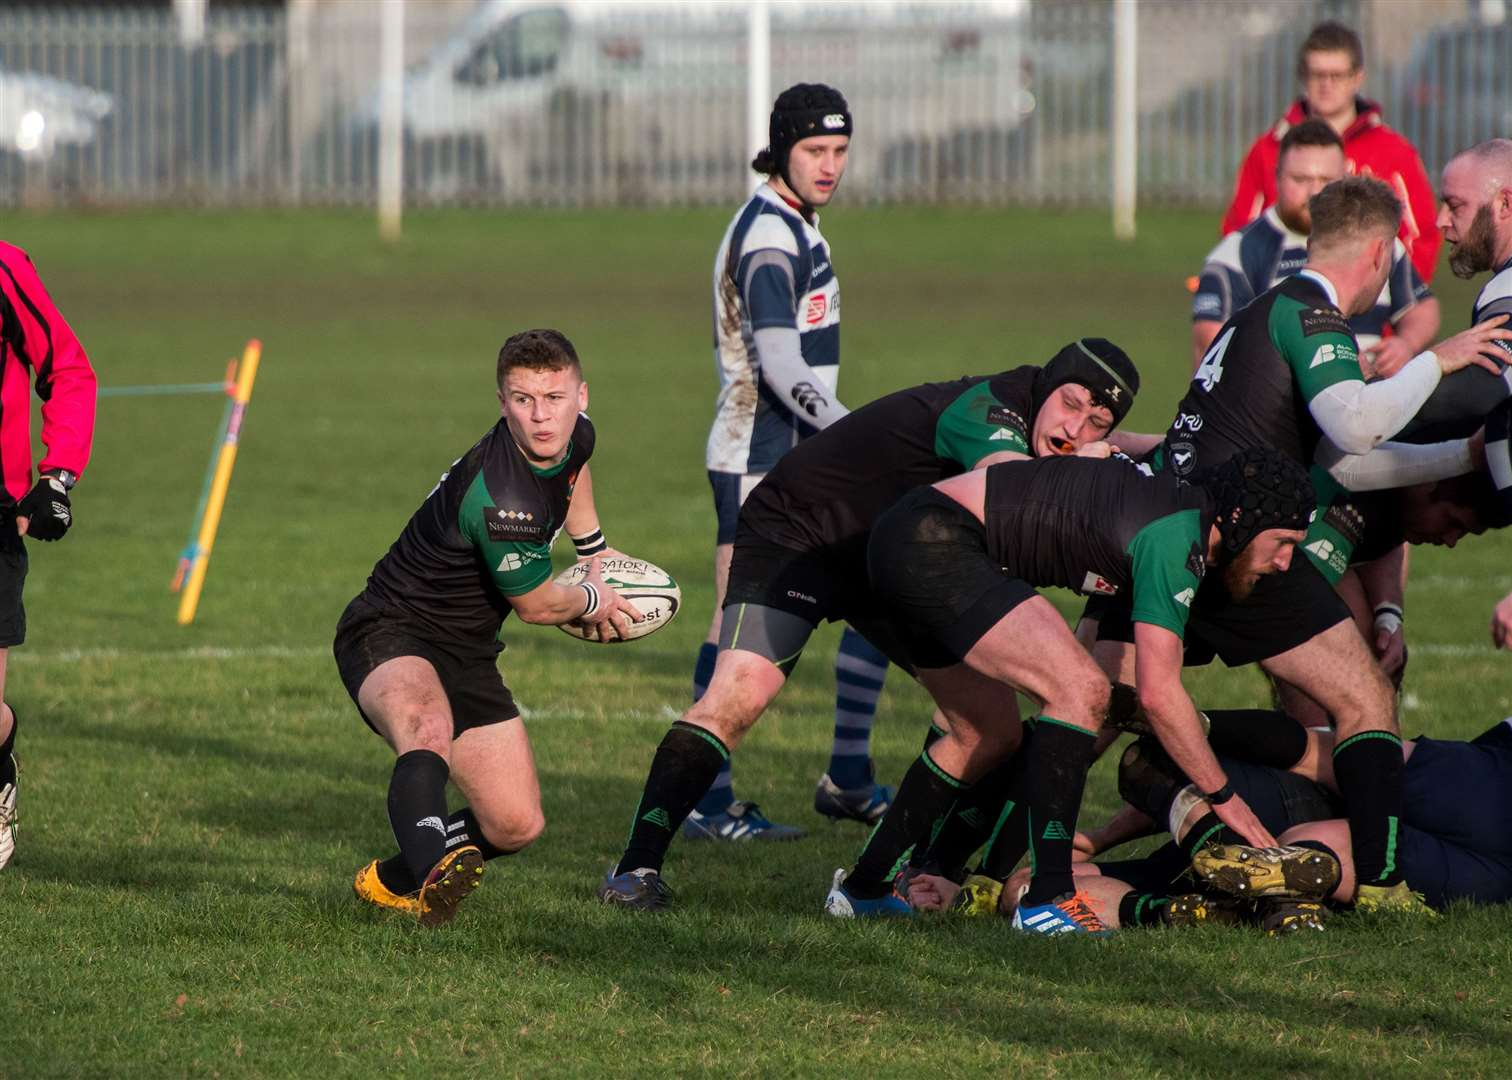 Newmarket Rugby Club will not be able to play any competitive matches until at least January 2021. Picture: Mark Westley